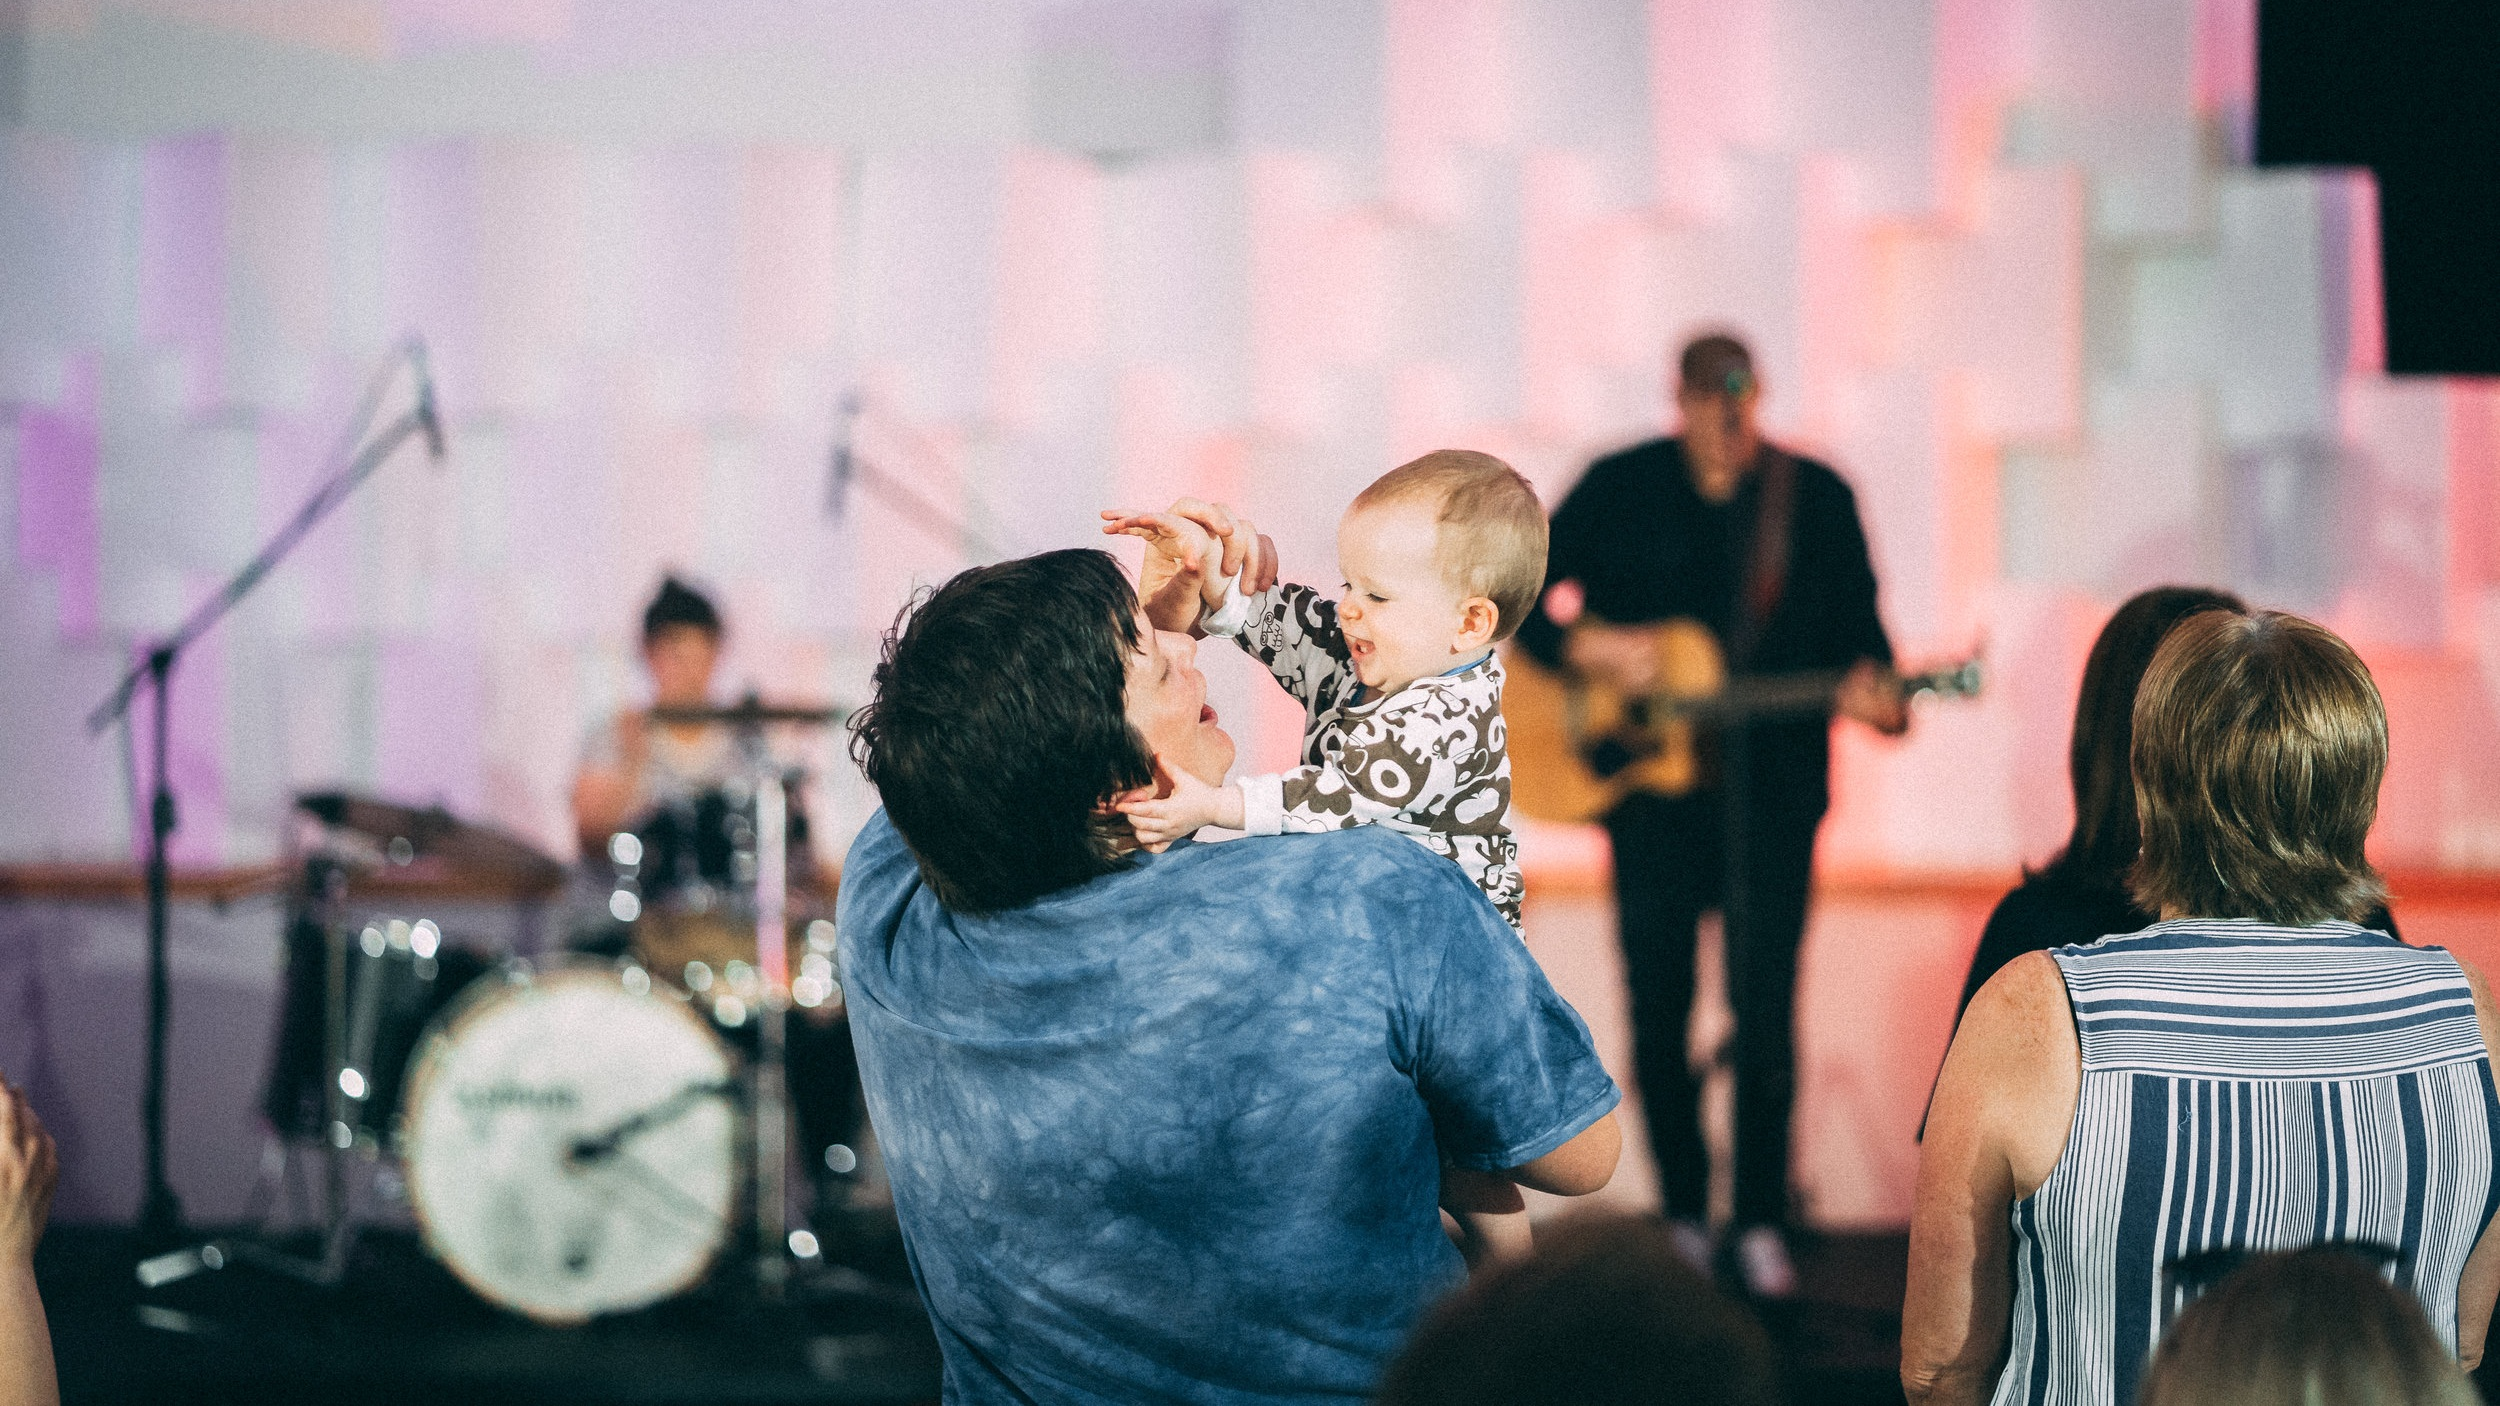 FAMILY - We celebrate family and it is a priority of ours that we make C3 Wellington a place that cultivates a love and desire for Jesus in every member of the family. We are passionate about creating an environment that enables all adults, young people and children to have a great church experience.